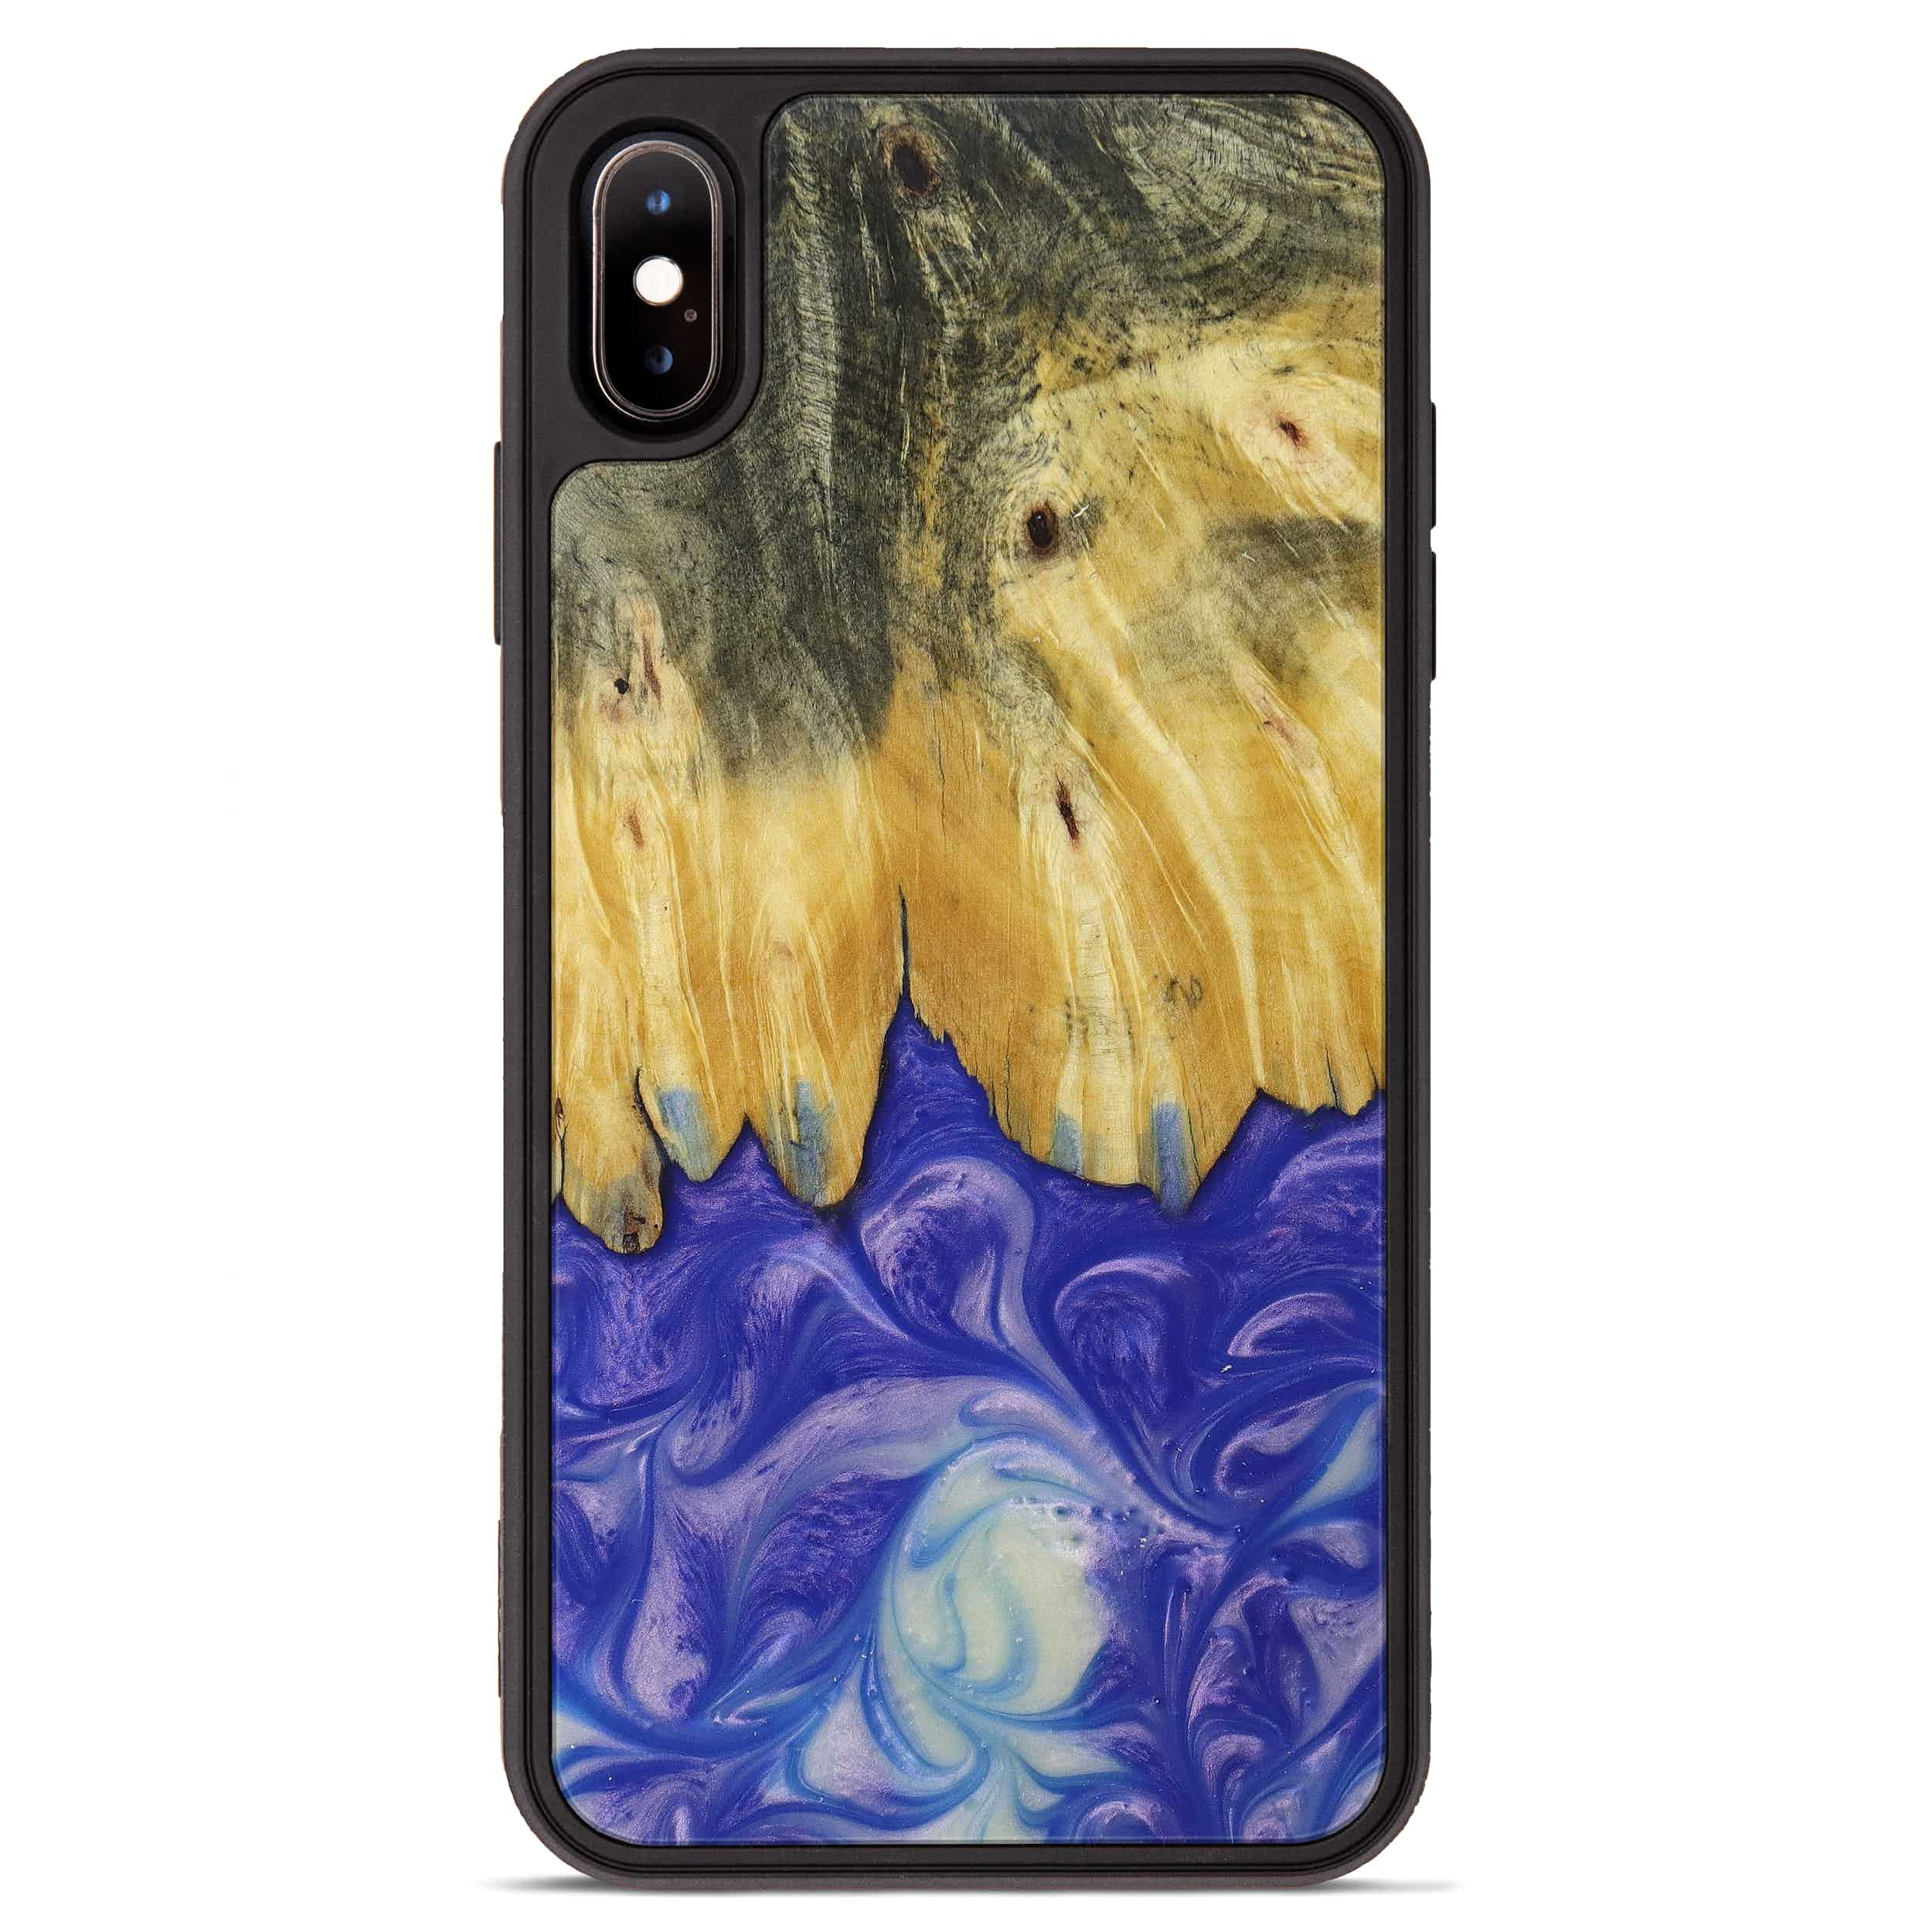 iPhone Xs Max Wood+Resin Phone Case - Hpone (Purple, 395914)